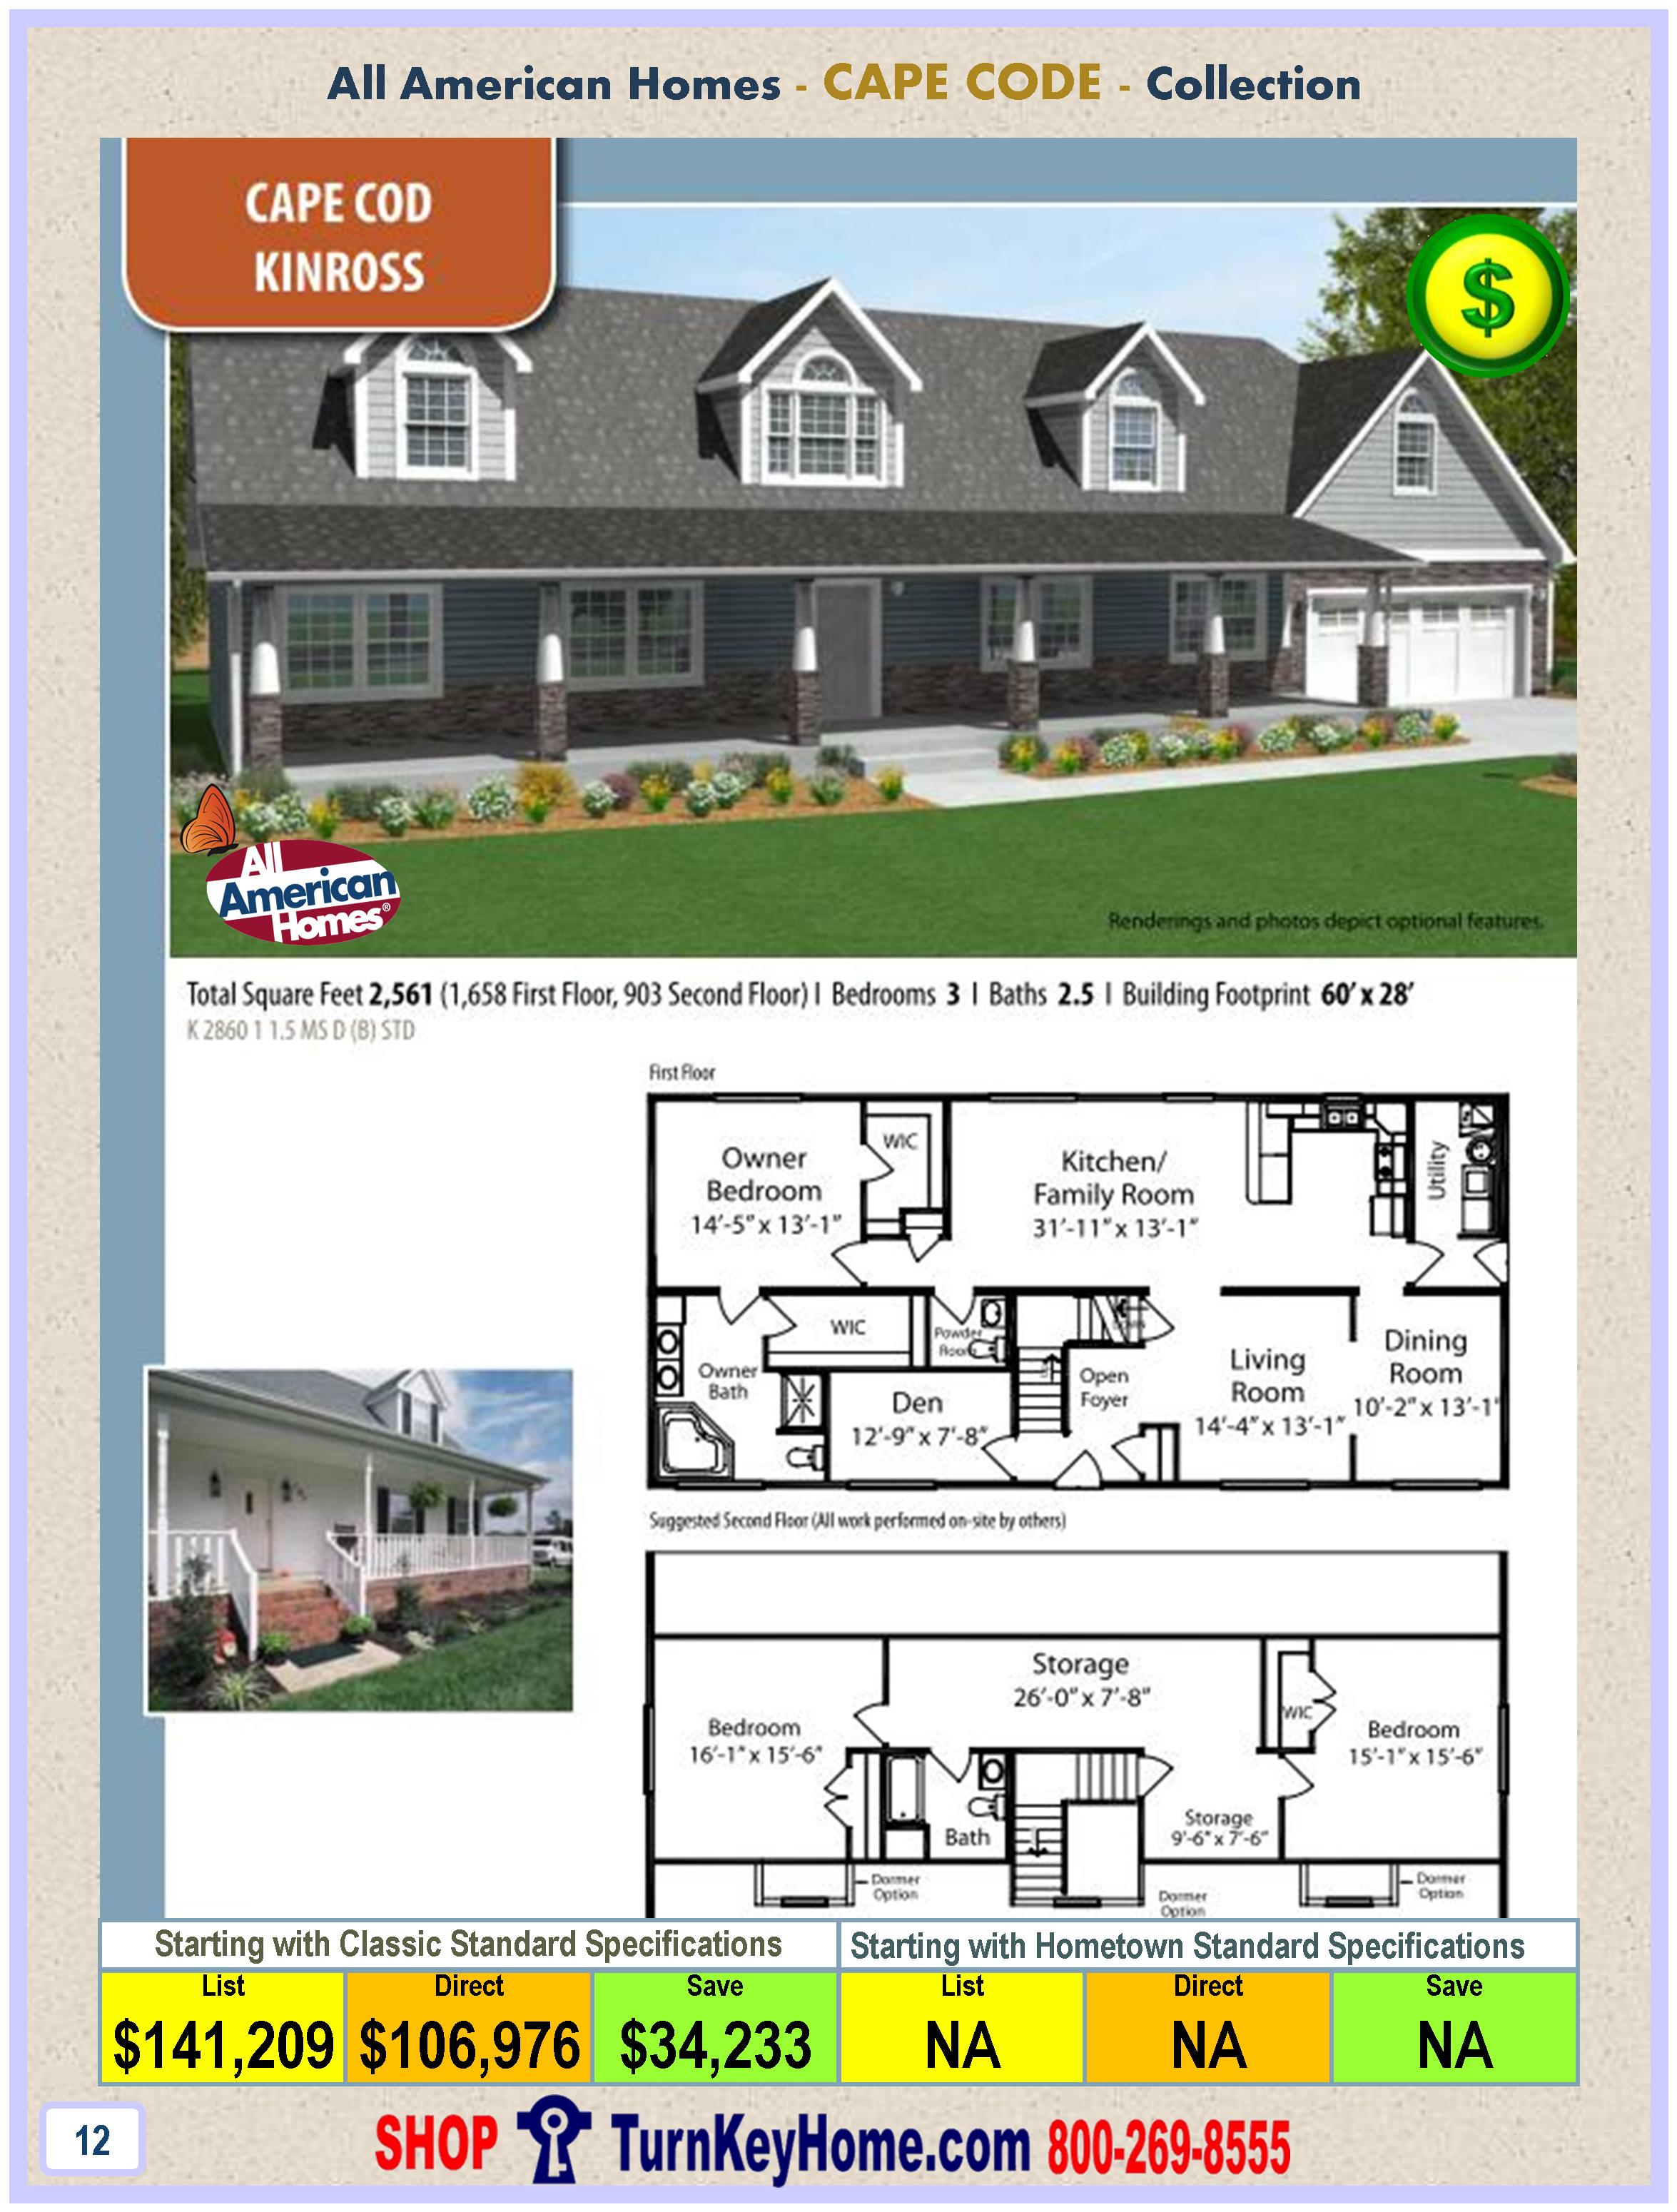 Modular.Home.All.American.Homes.Cape.Cod.KINROSS.Plan.Price.P12.11.28.15